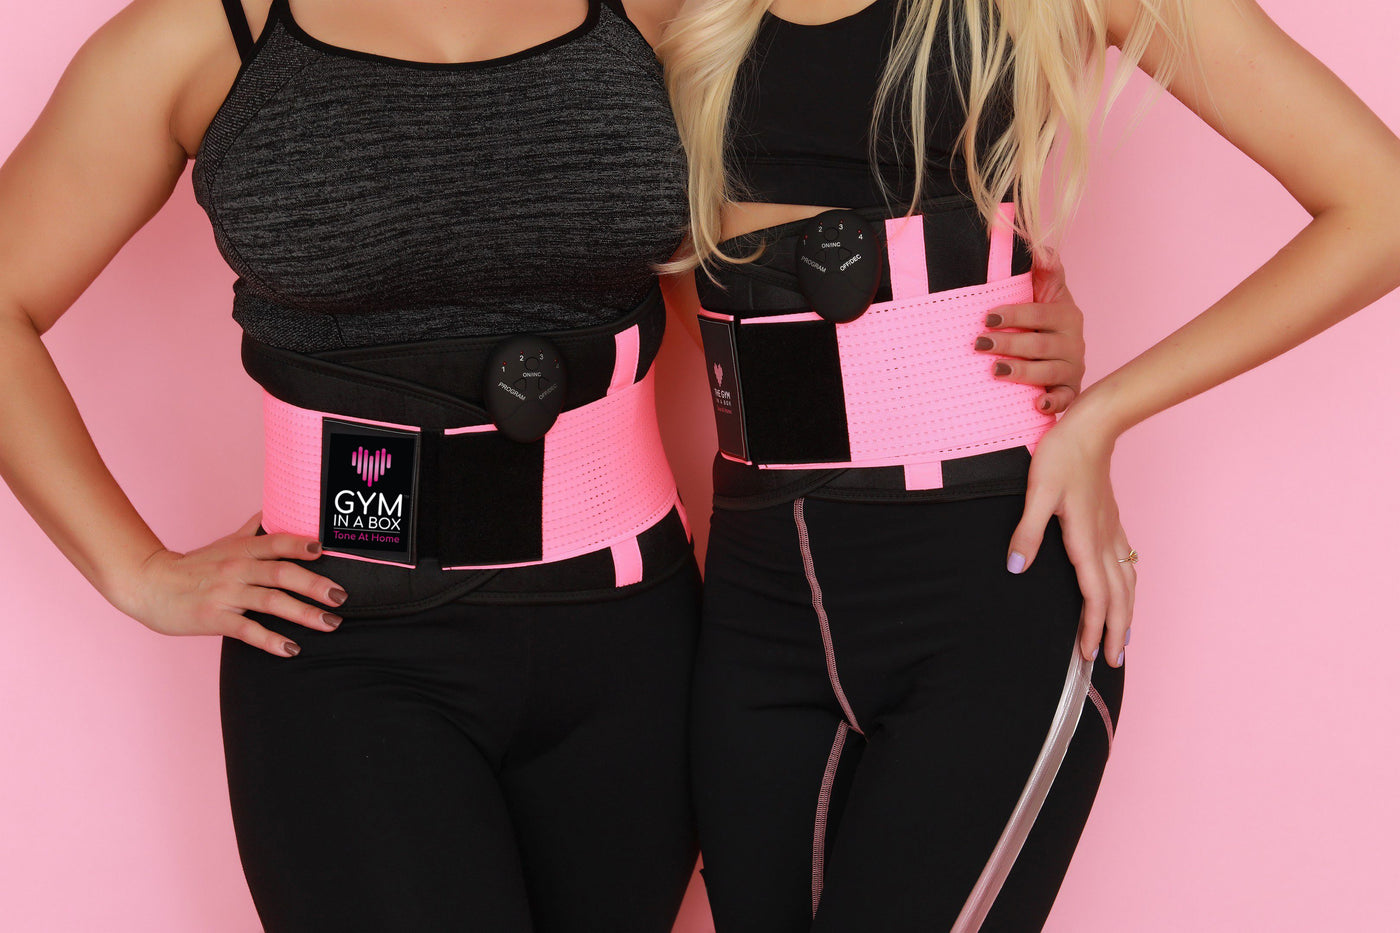 GYM IN A BOX CoreWrap Waist Trimmer HOT PINK